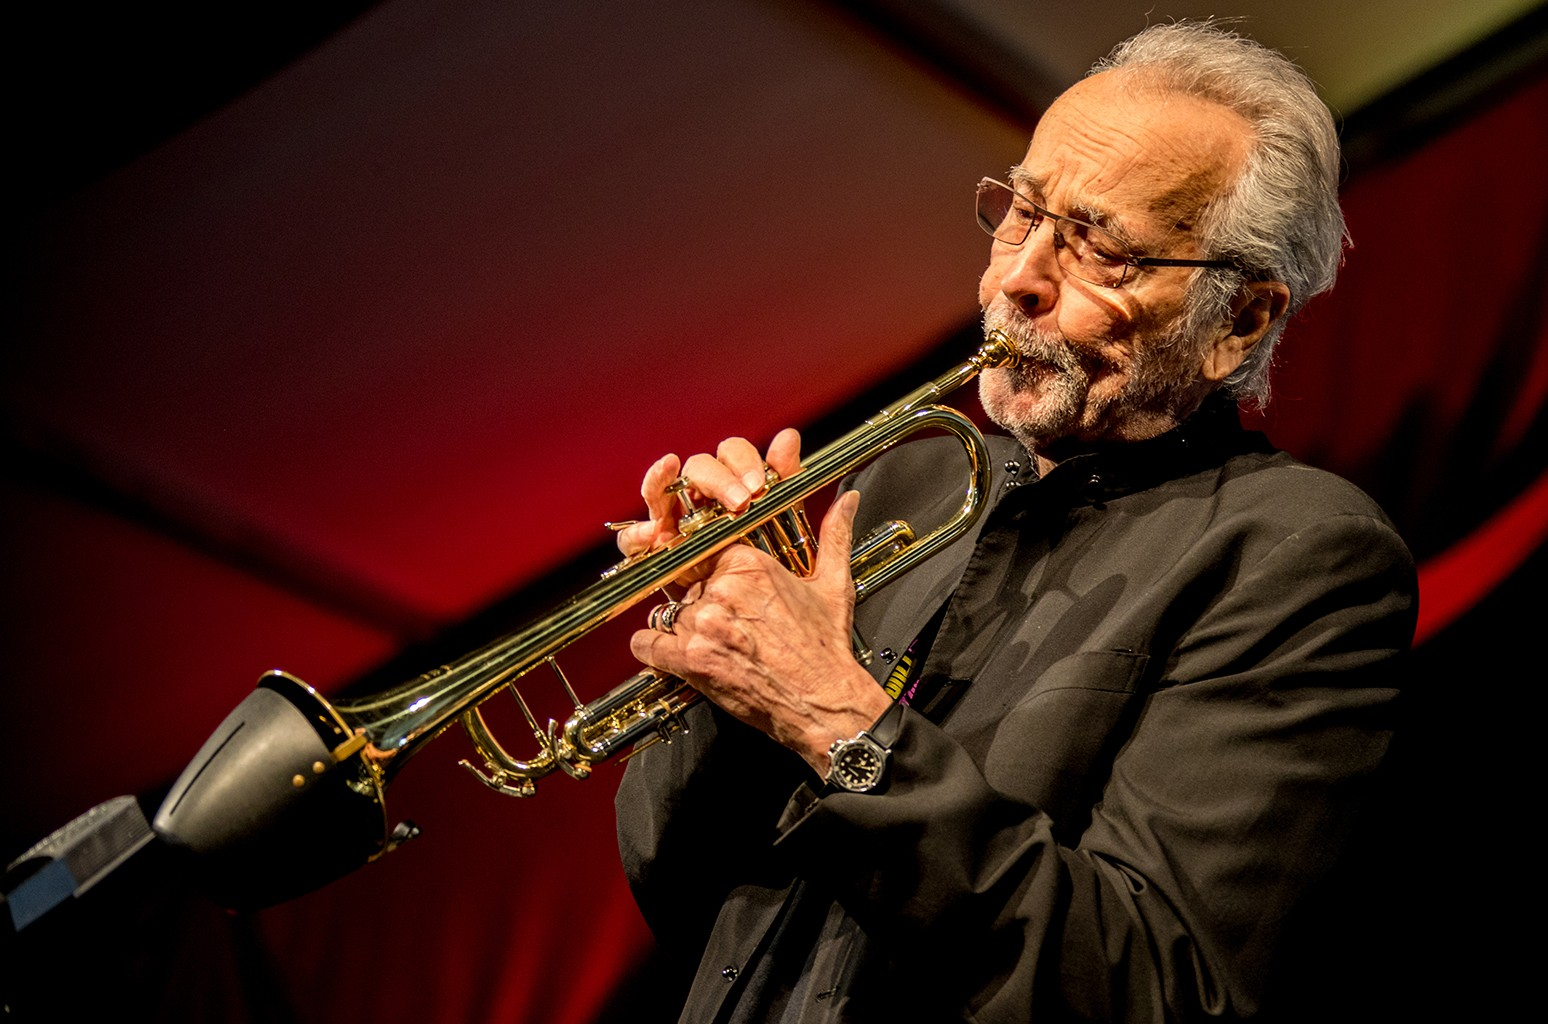 Herb Alpert performs during the New Orleans Jazz & Heritage Festival 2017 at Fair Grounds Race Course on May 4, 2017 in New Orleans.